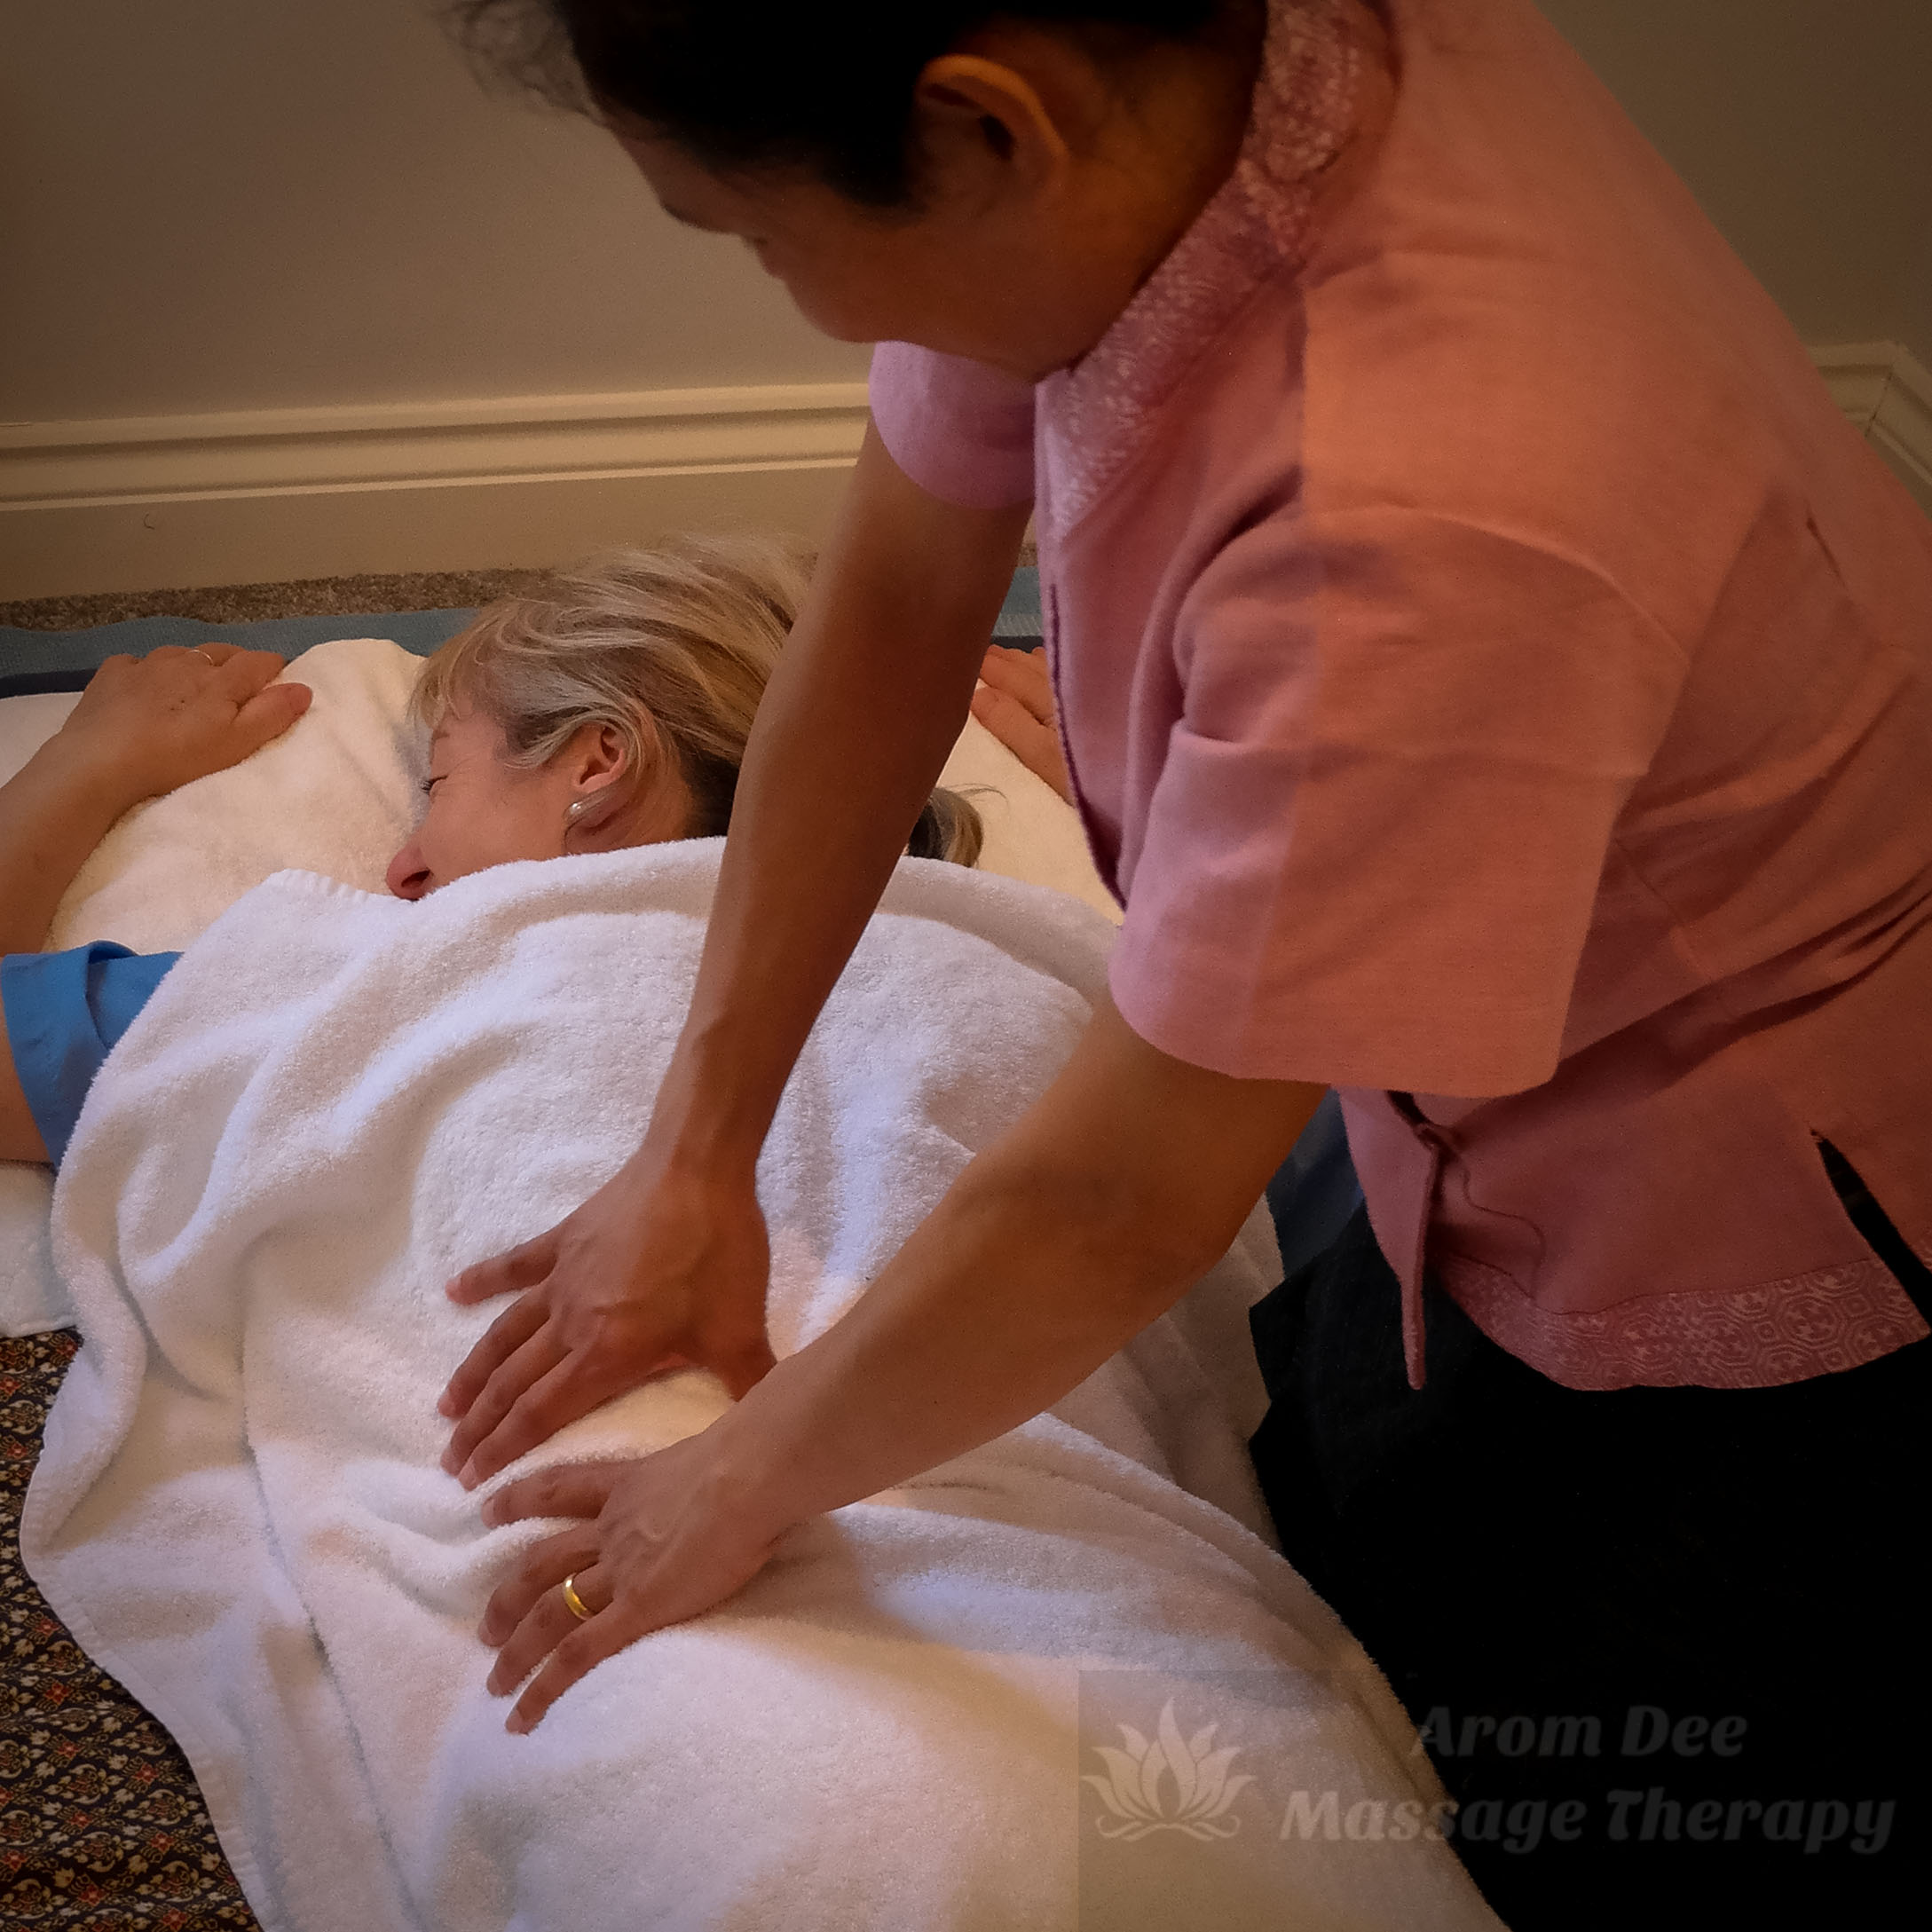 Accupressure applied to client's back through towel by masseuse